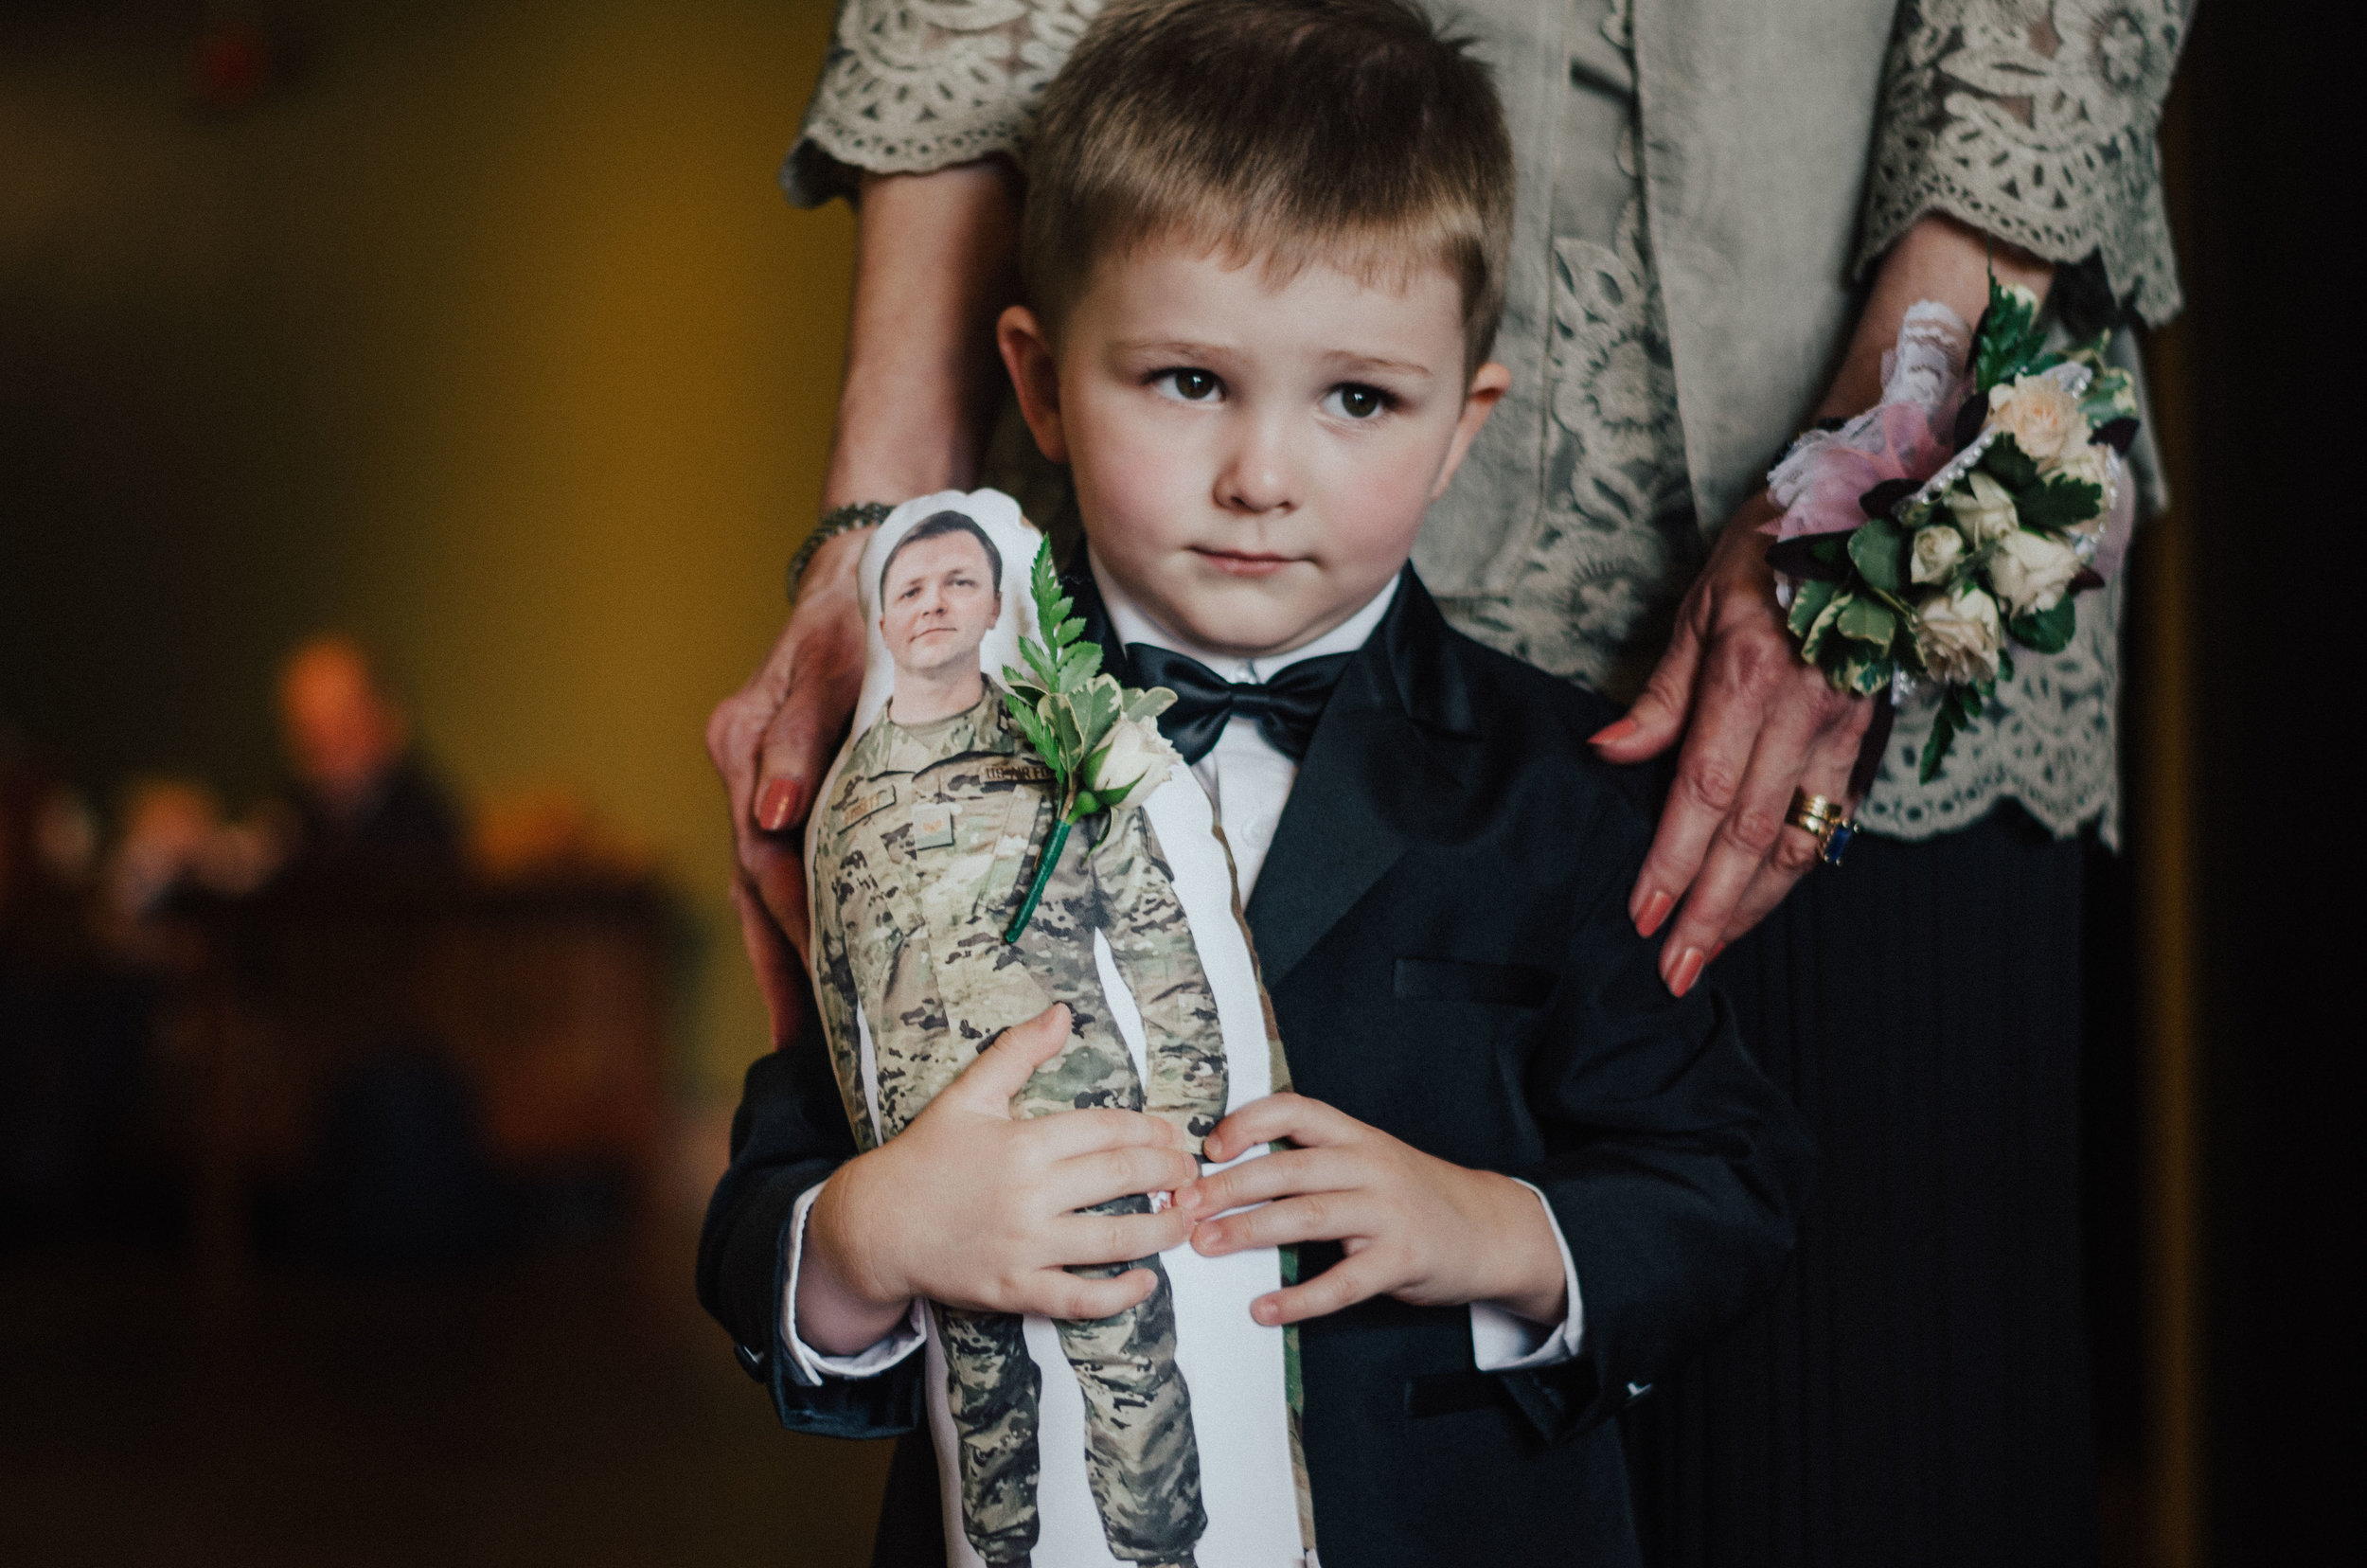 Justin's brother was deployed during their wedding, so they had this little doll made for his nephew which the little guy carried with him all day. Cue all the tears!